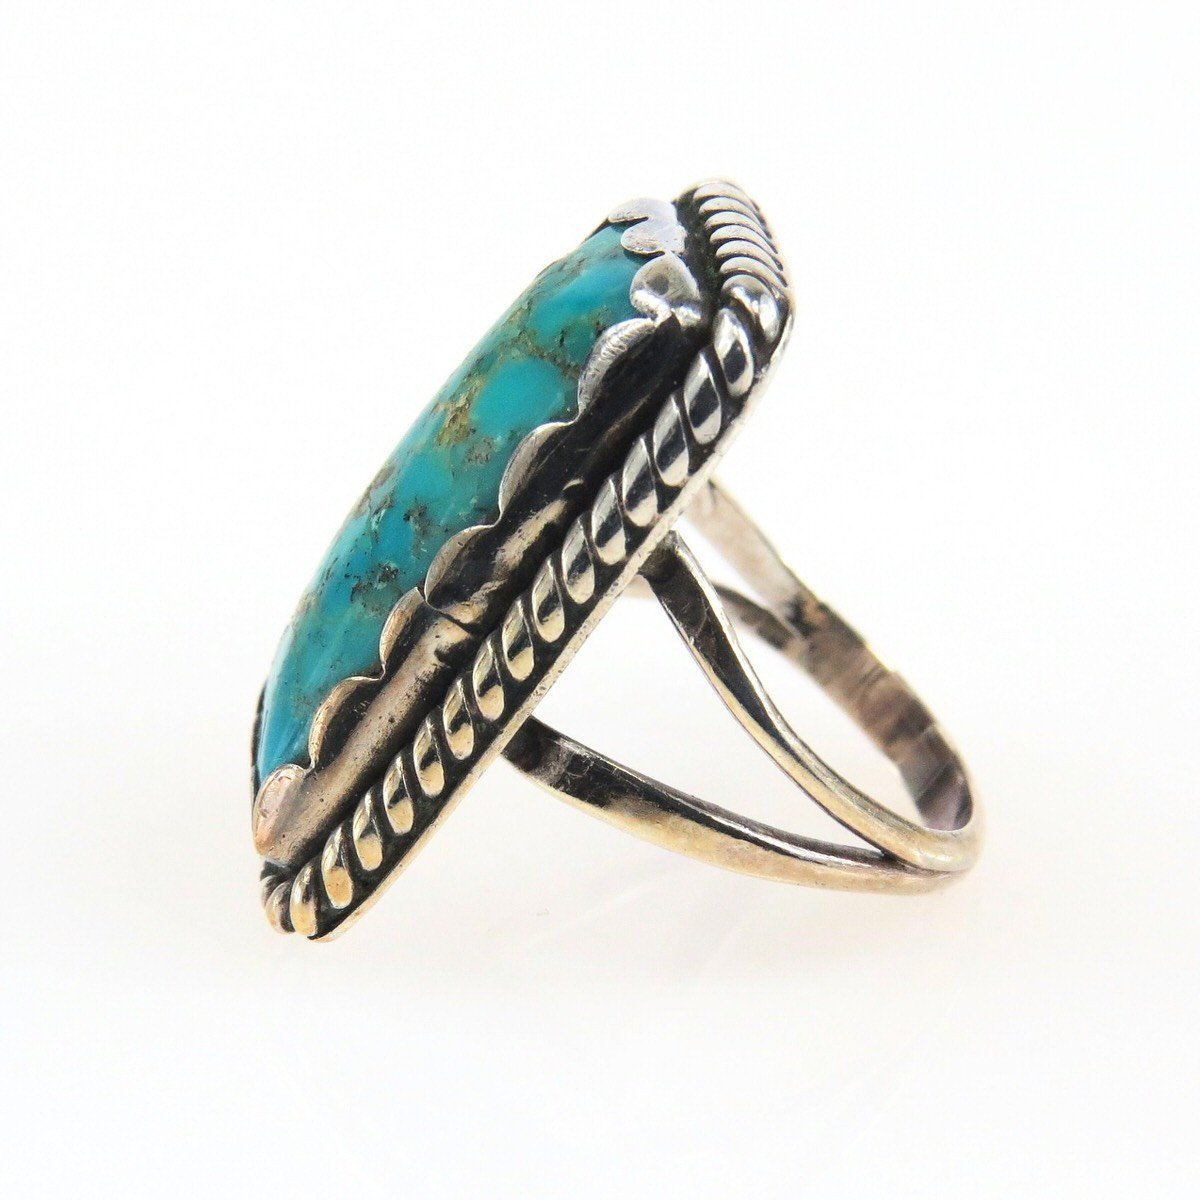 navajo rings indian wedding and ideas turquoise band of best luxury birthday american native